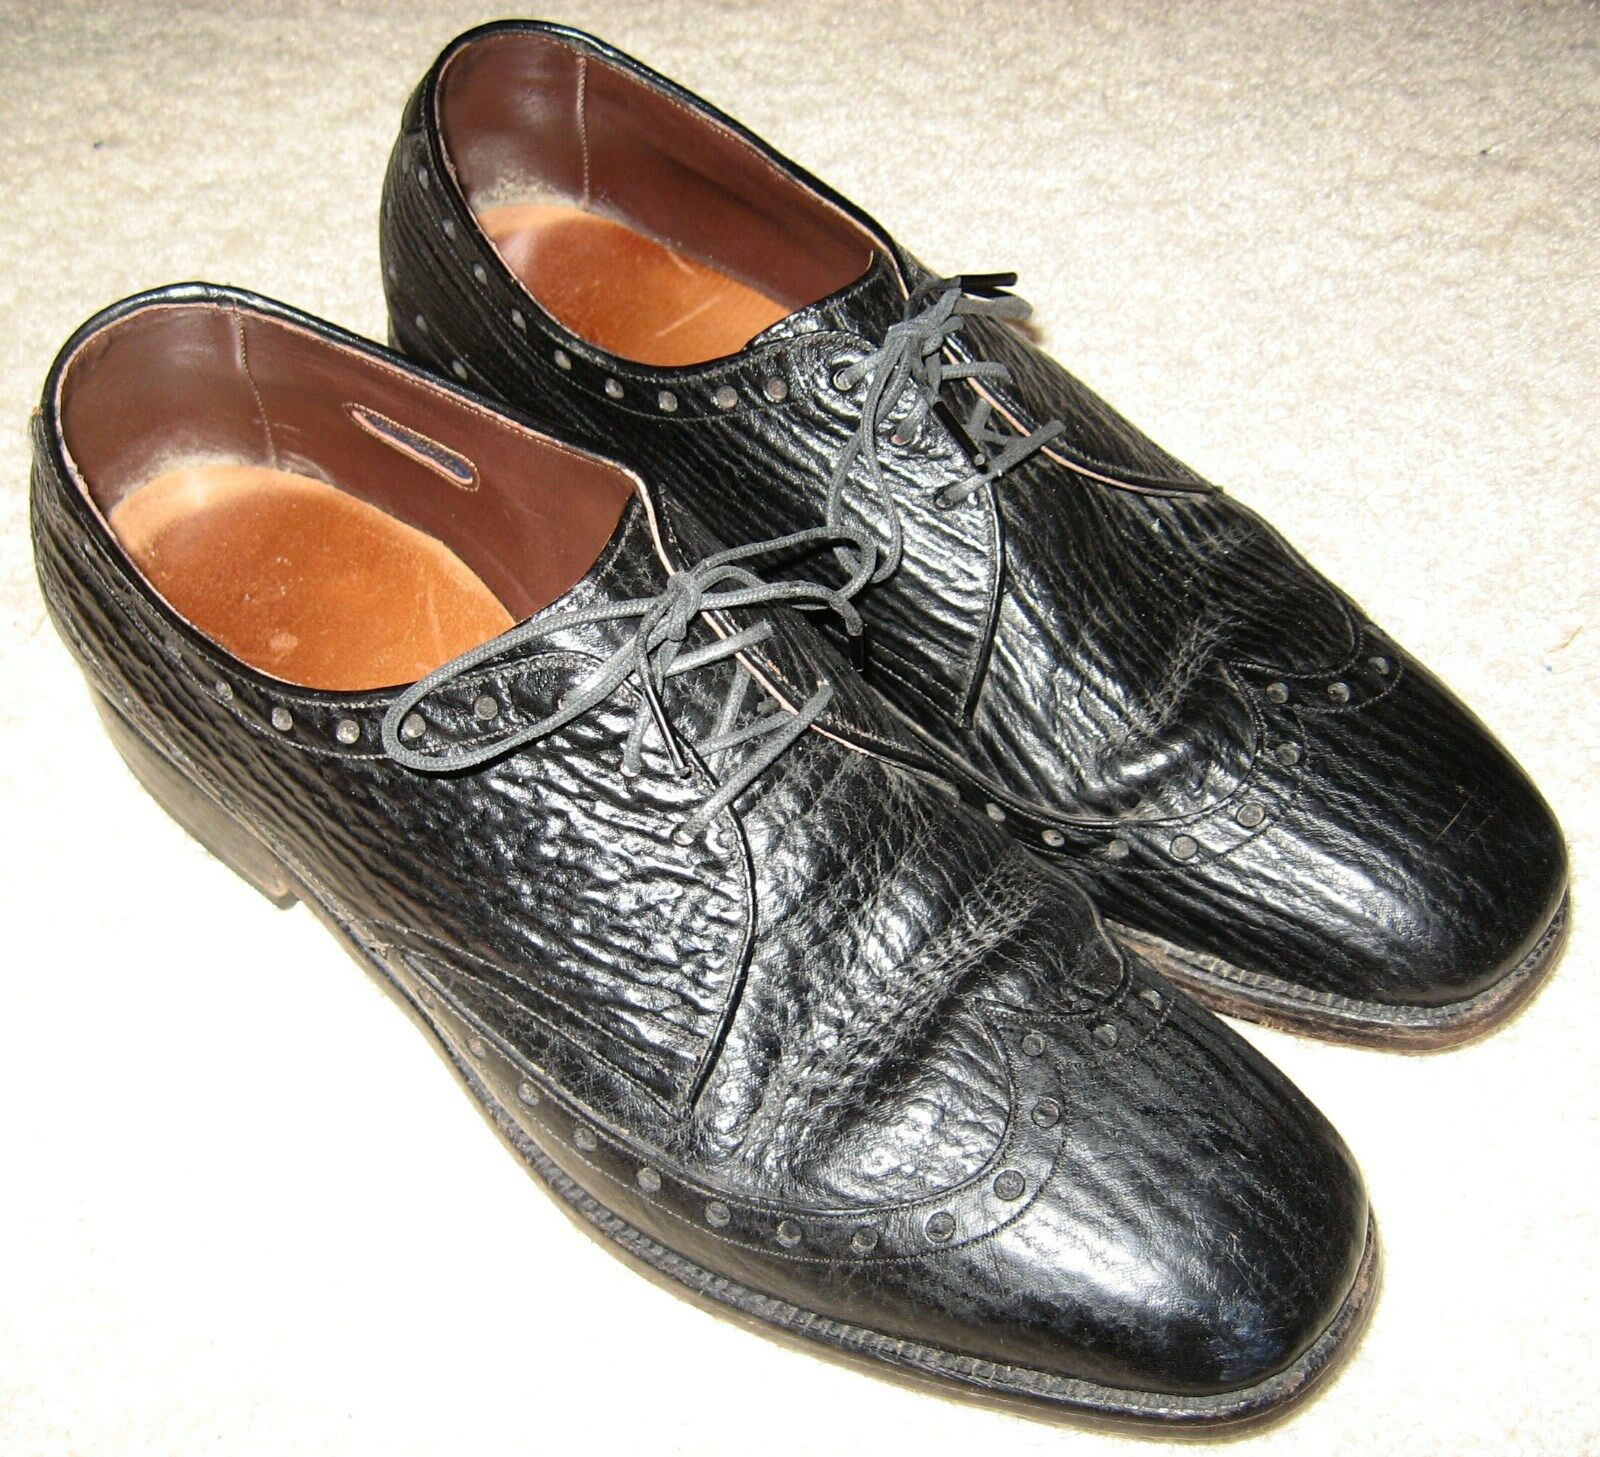 SHARKSKIN ALLEN EDMONDS Nassau Oxfords  9.5B  WINGTIP narrow n 1 2